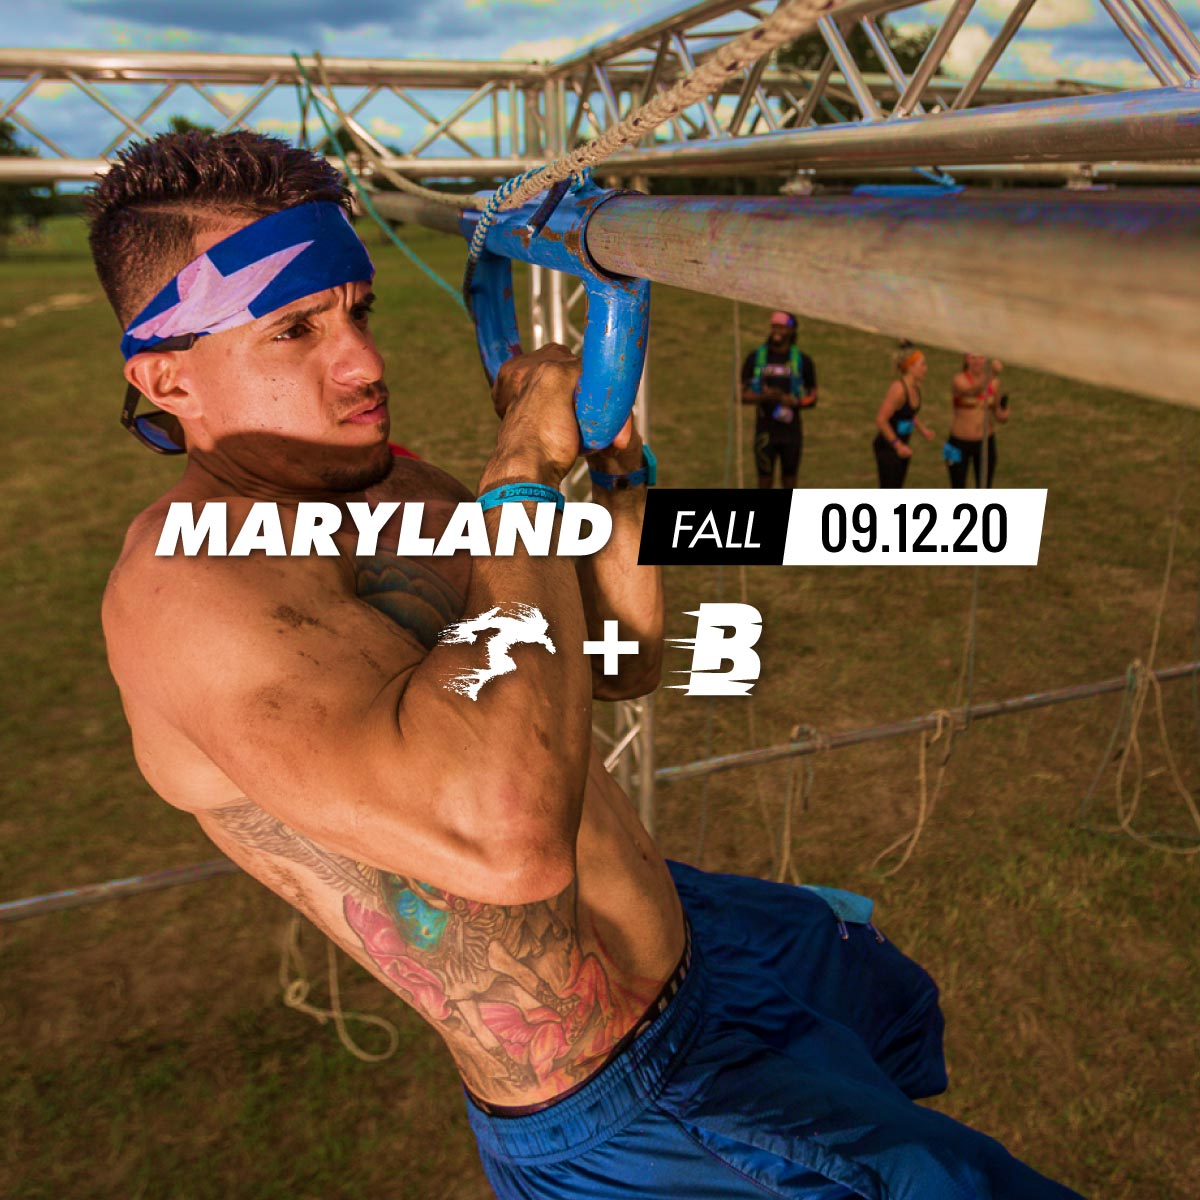 Spectator Pass - Savage Race Maryland Fall 2020